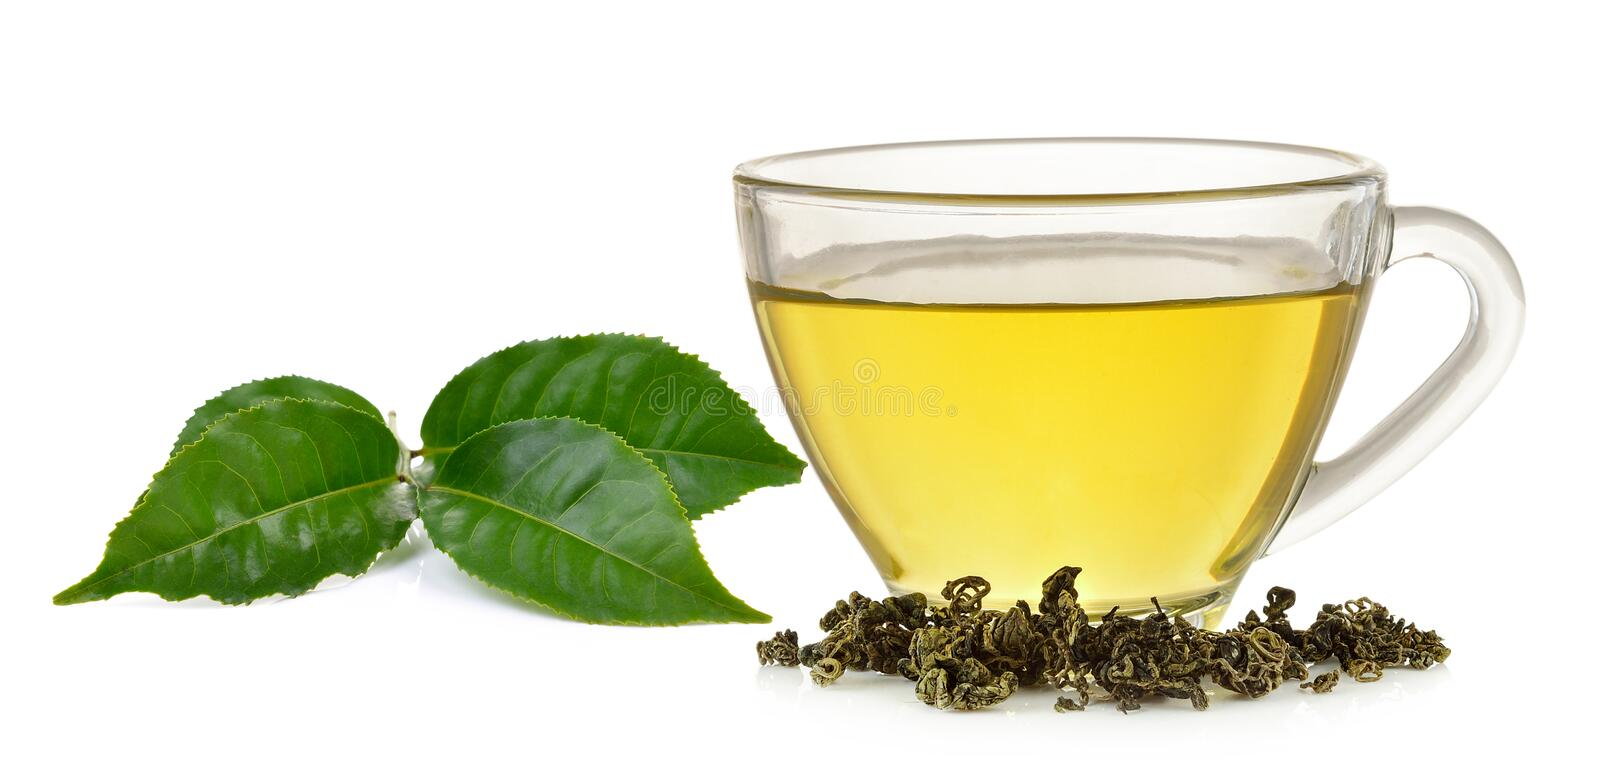 Glass cup of green tea and mint isolated on white background. Glass cup of green tea and mint isolated on a white background stock photo